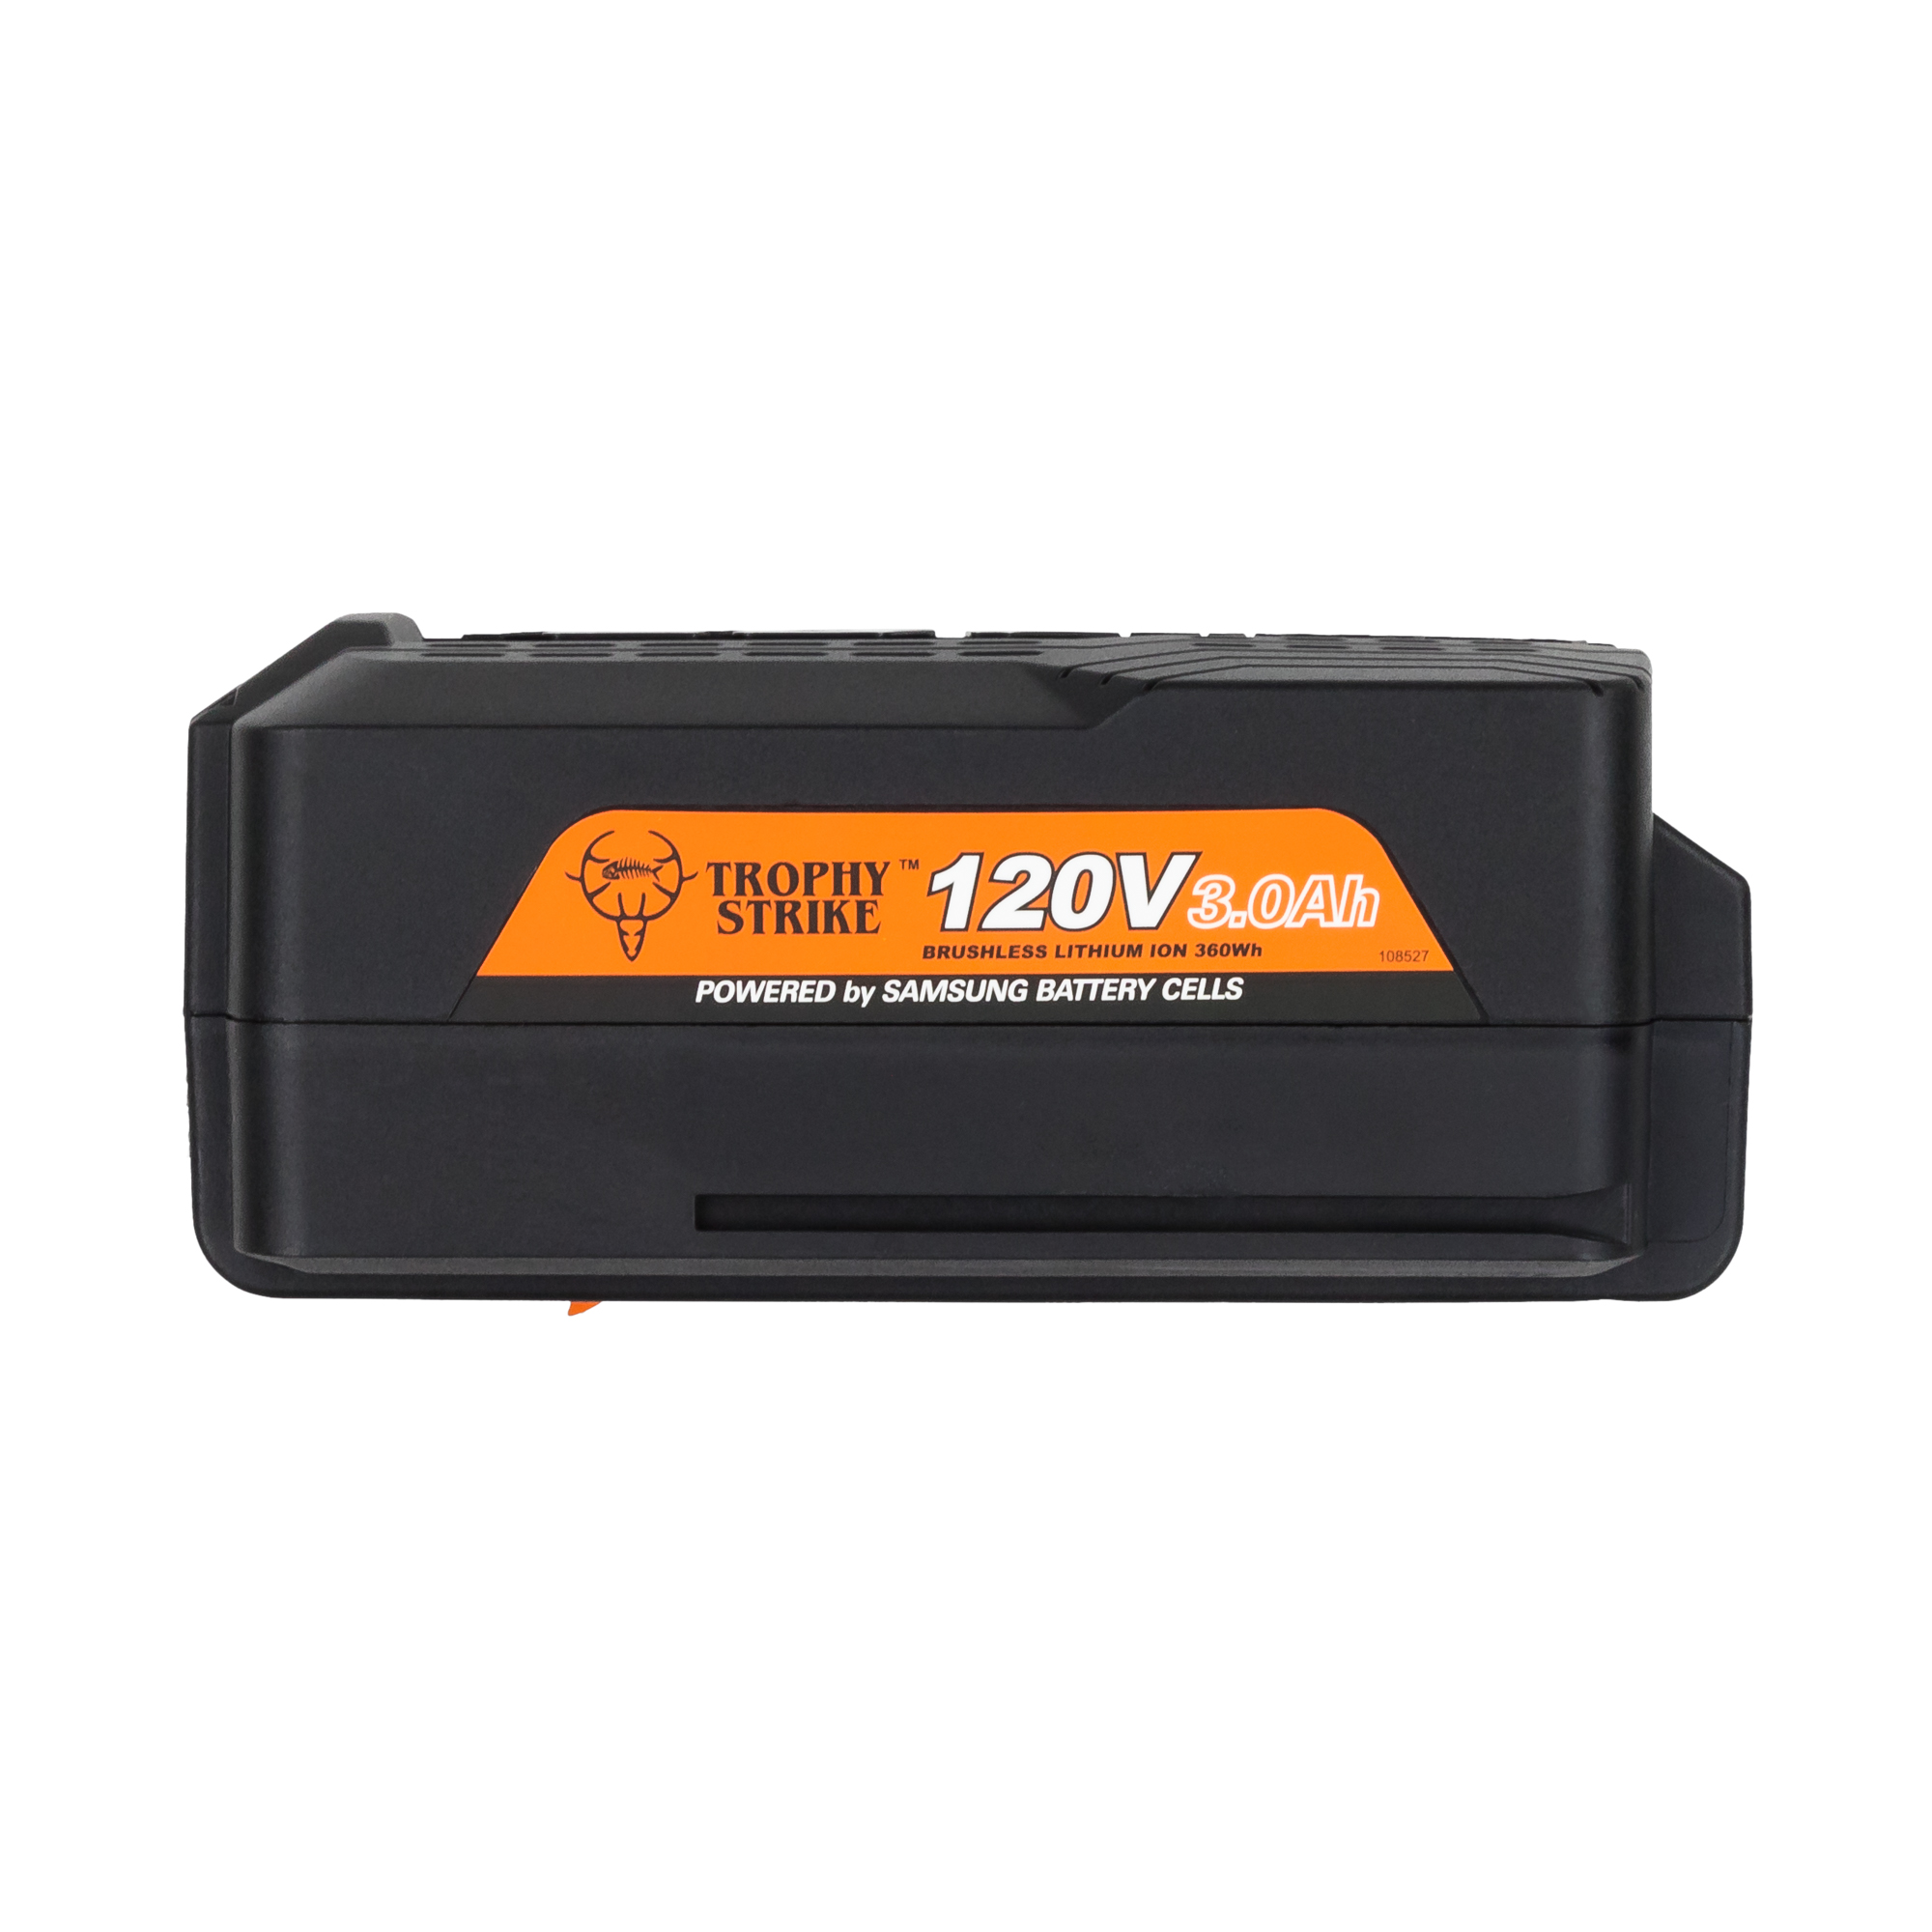 120V 3 0Ah Lithium Ion Rechargeable Battery – For 120V Ice Auger Kits